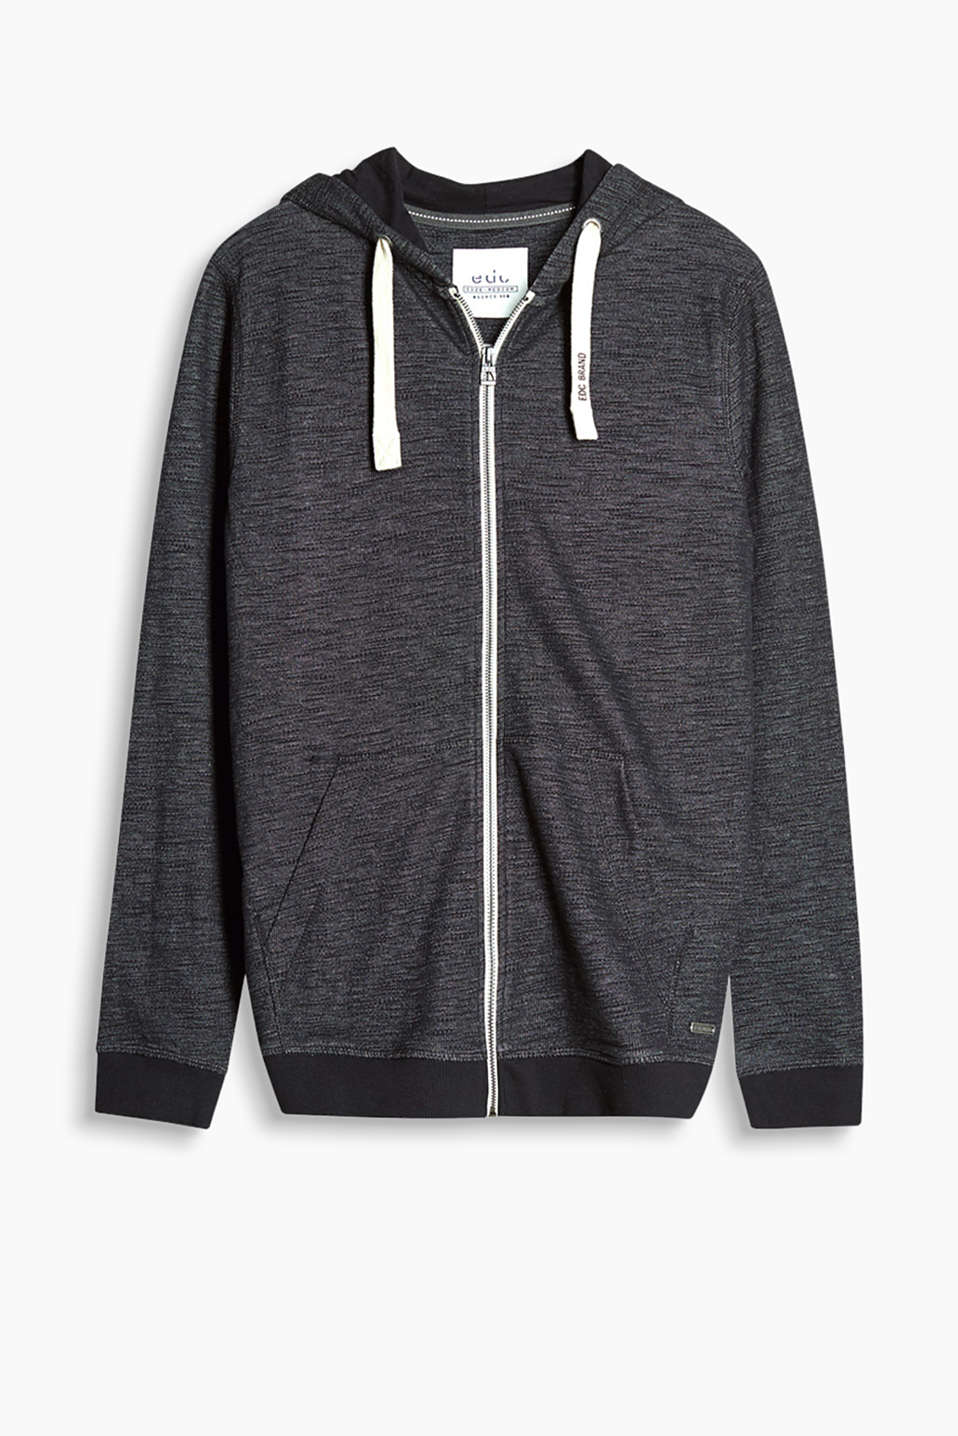 A sporty fashion essential: this hoodie with contrasting coloured zip, made of pure sweatshirt cotton fabric.